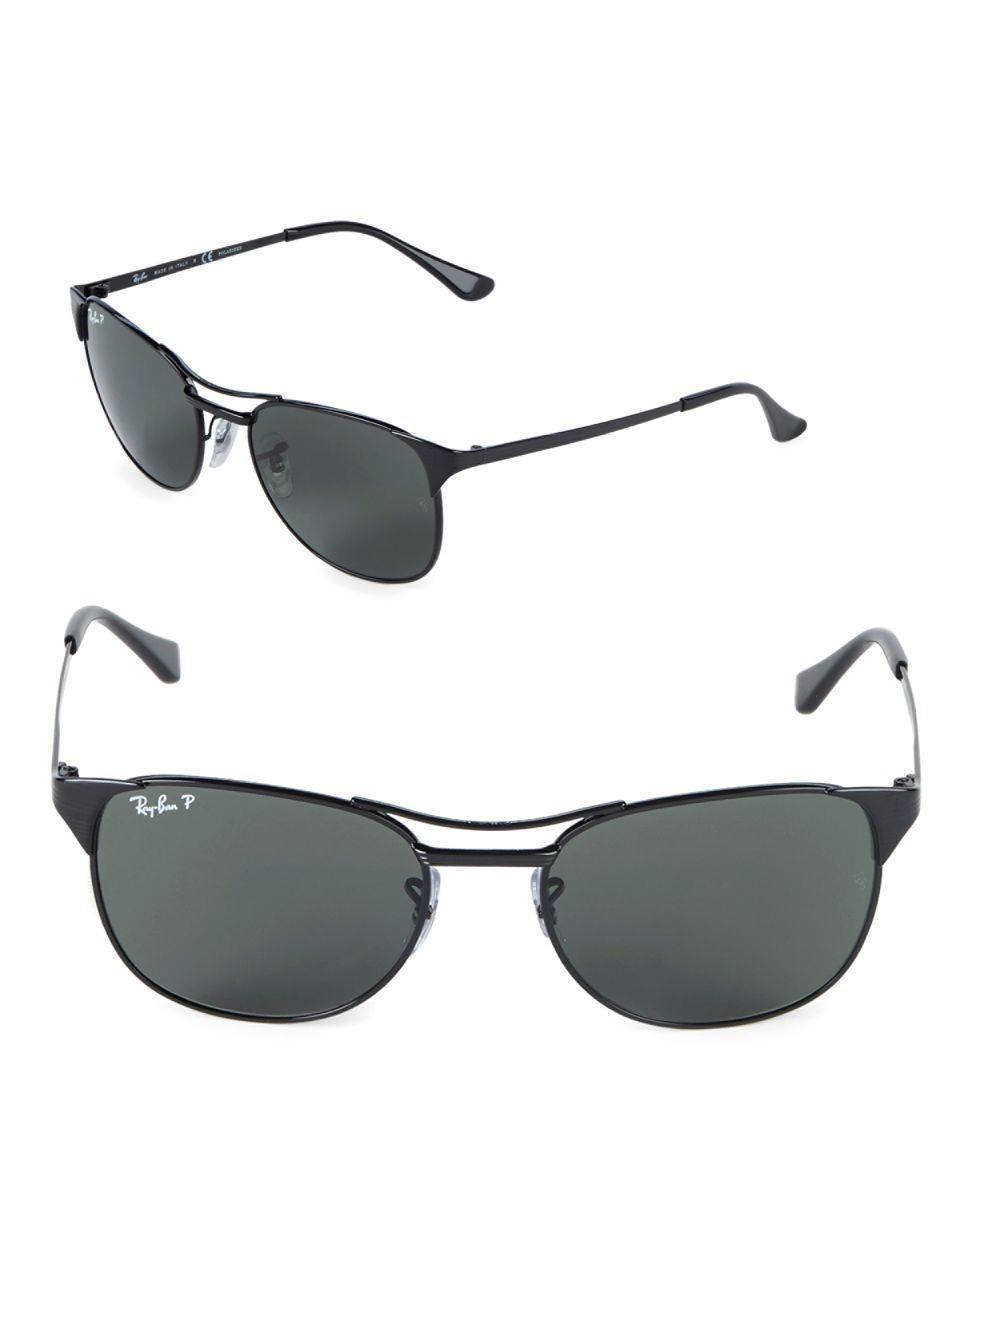 60ccf040f6 Lyst - Ray-Ban 55mm Polarized Signet Sunglasses in Black for Men ...